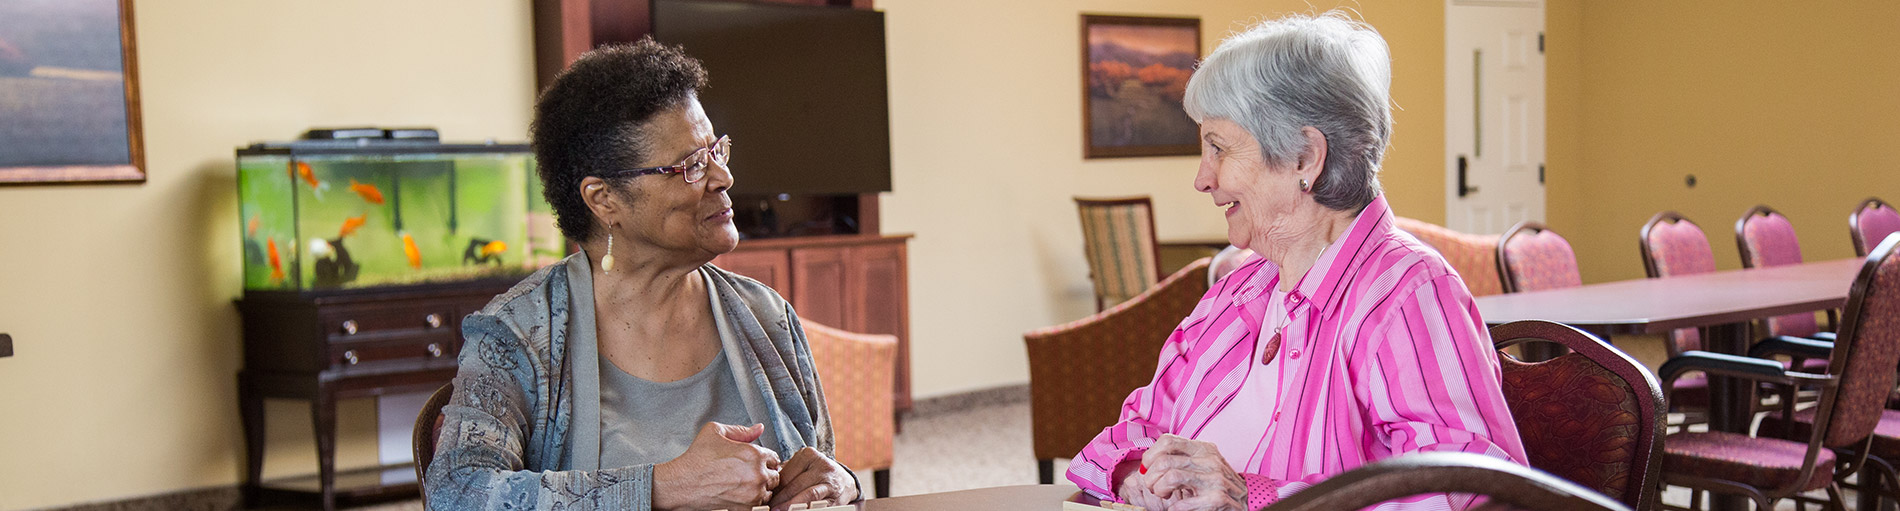 Senior Living Activities and Opportunities in MN